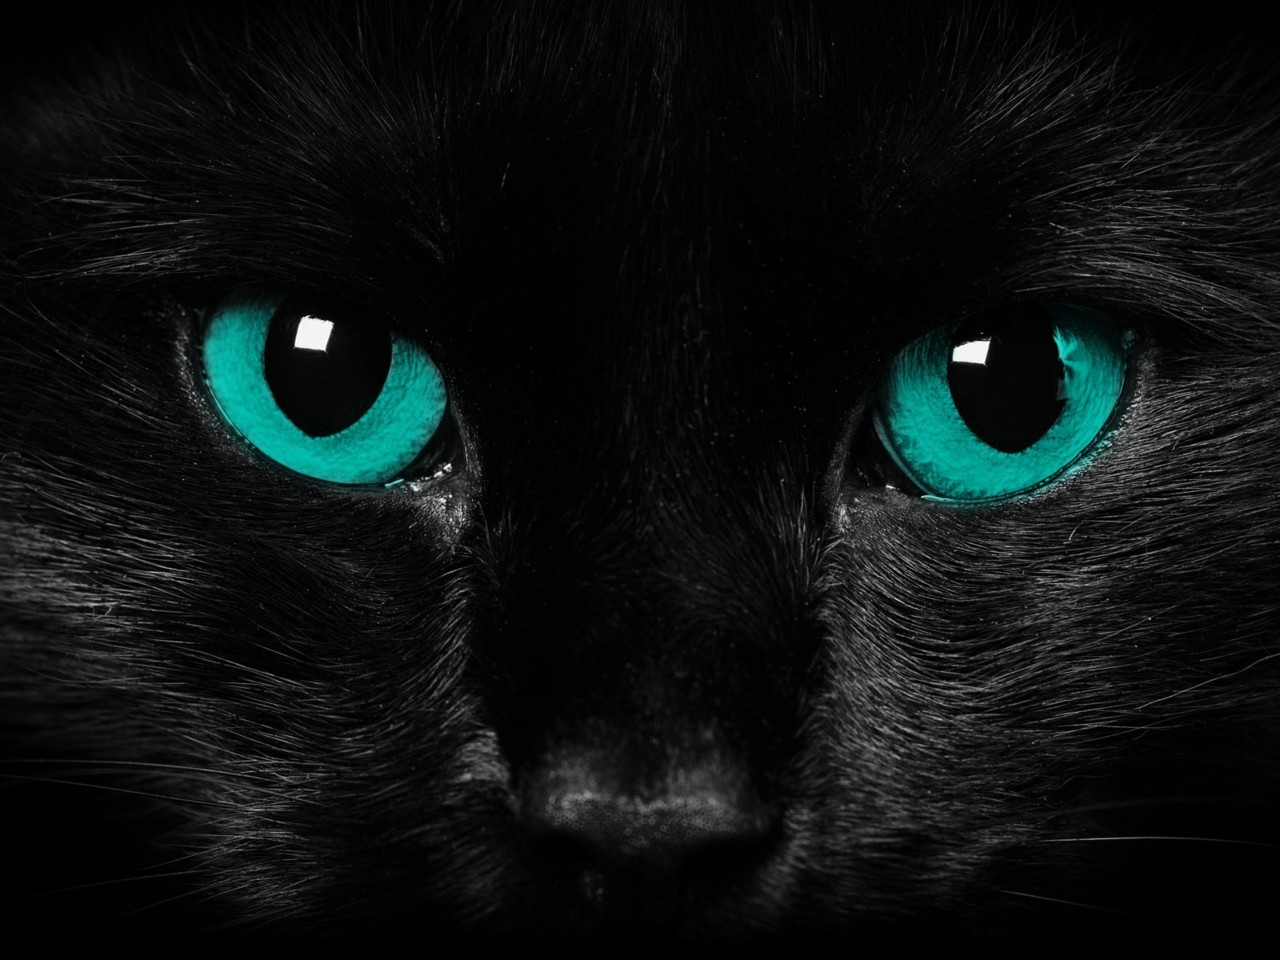 black-cat-blue-eyes-cat-wallpaper.